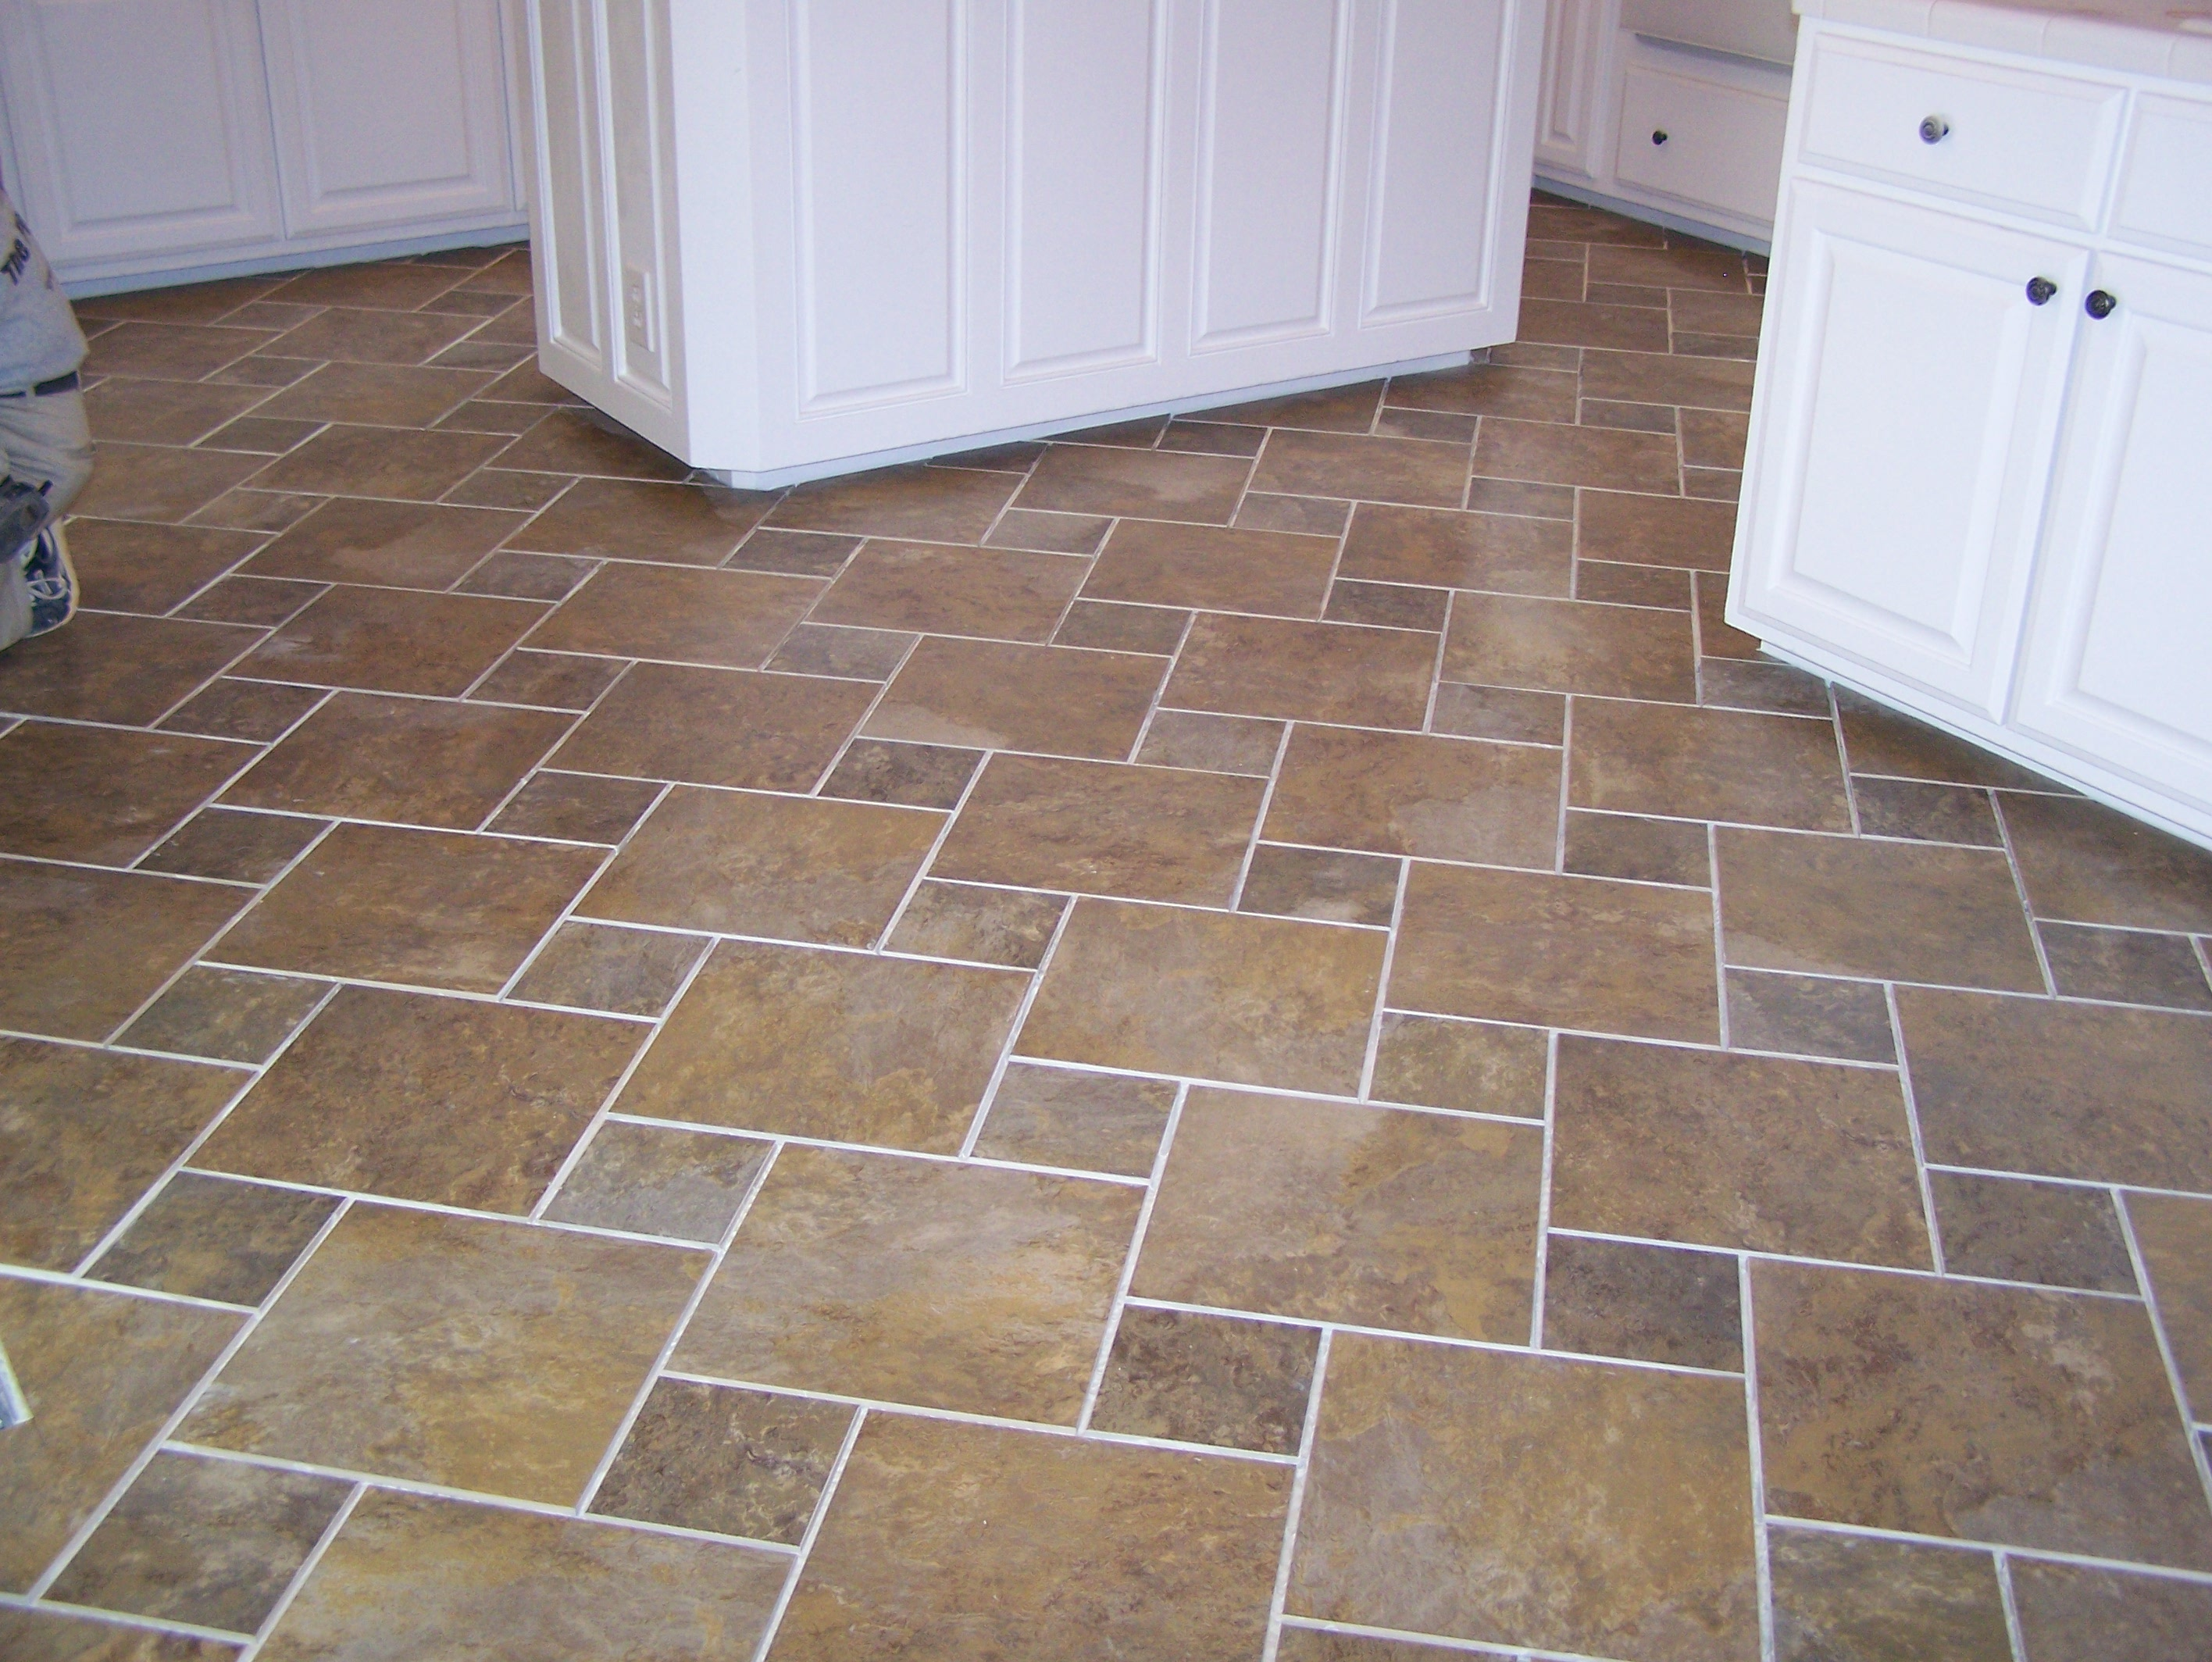 Ceramic Floor Tile Ebay Ceramic Floor Tile Edmonton Ceramic Floor Tile